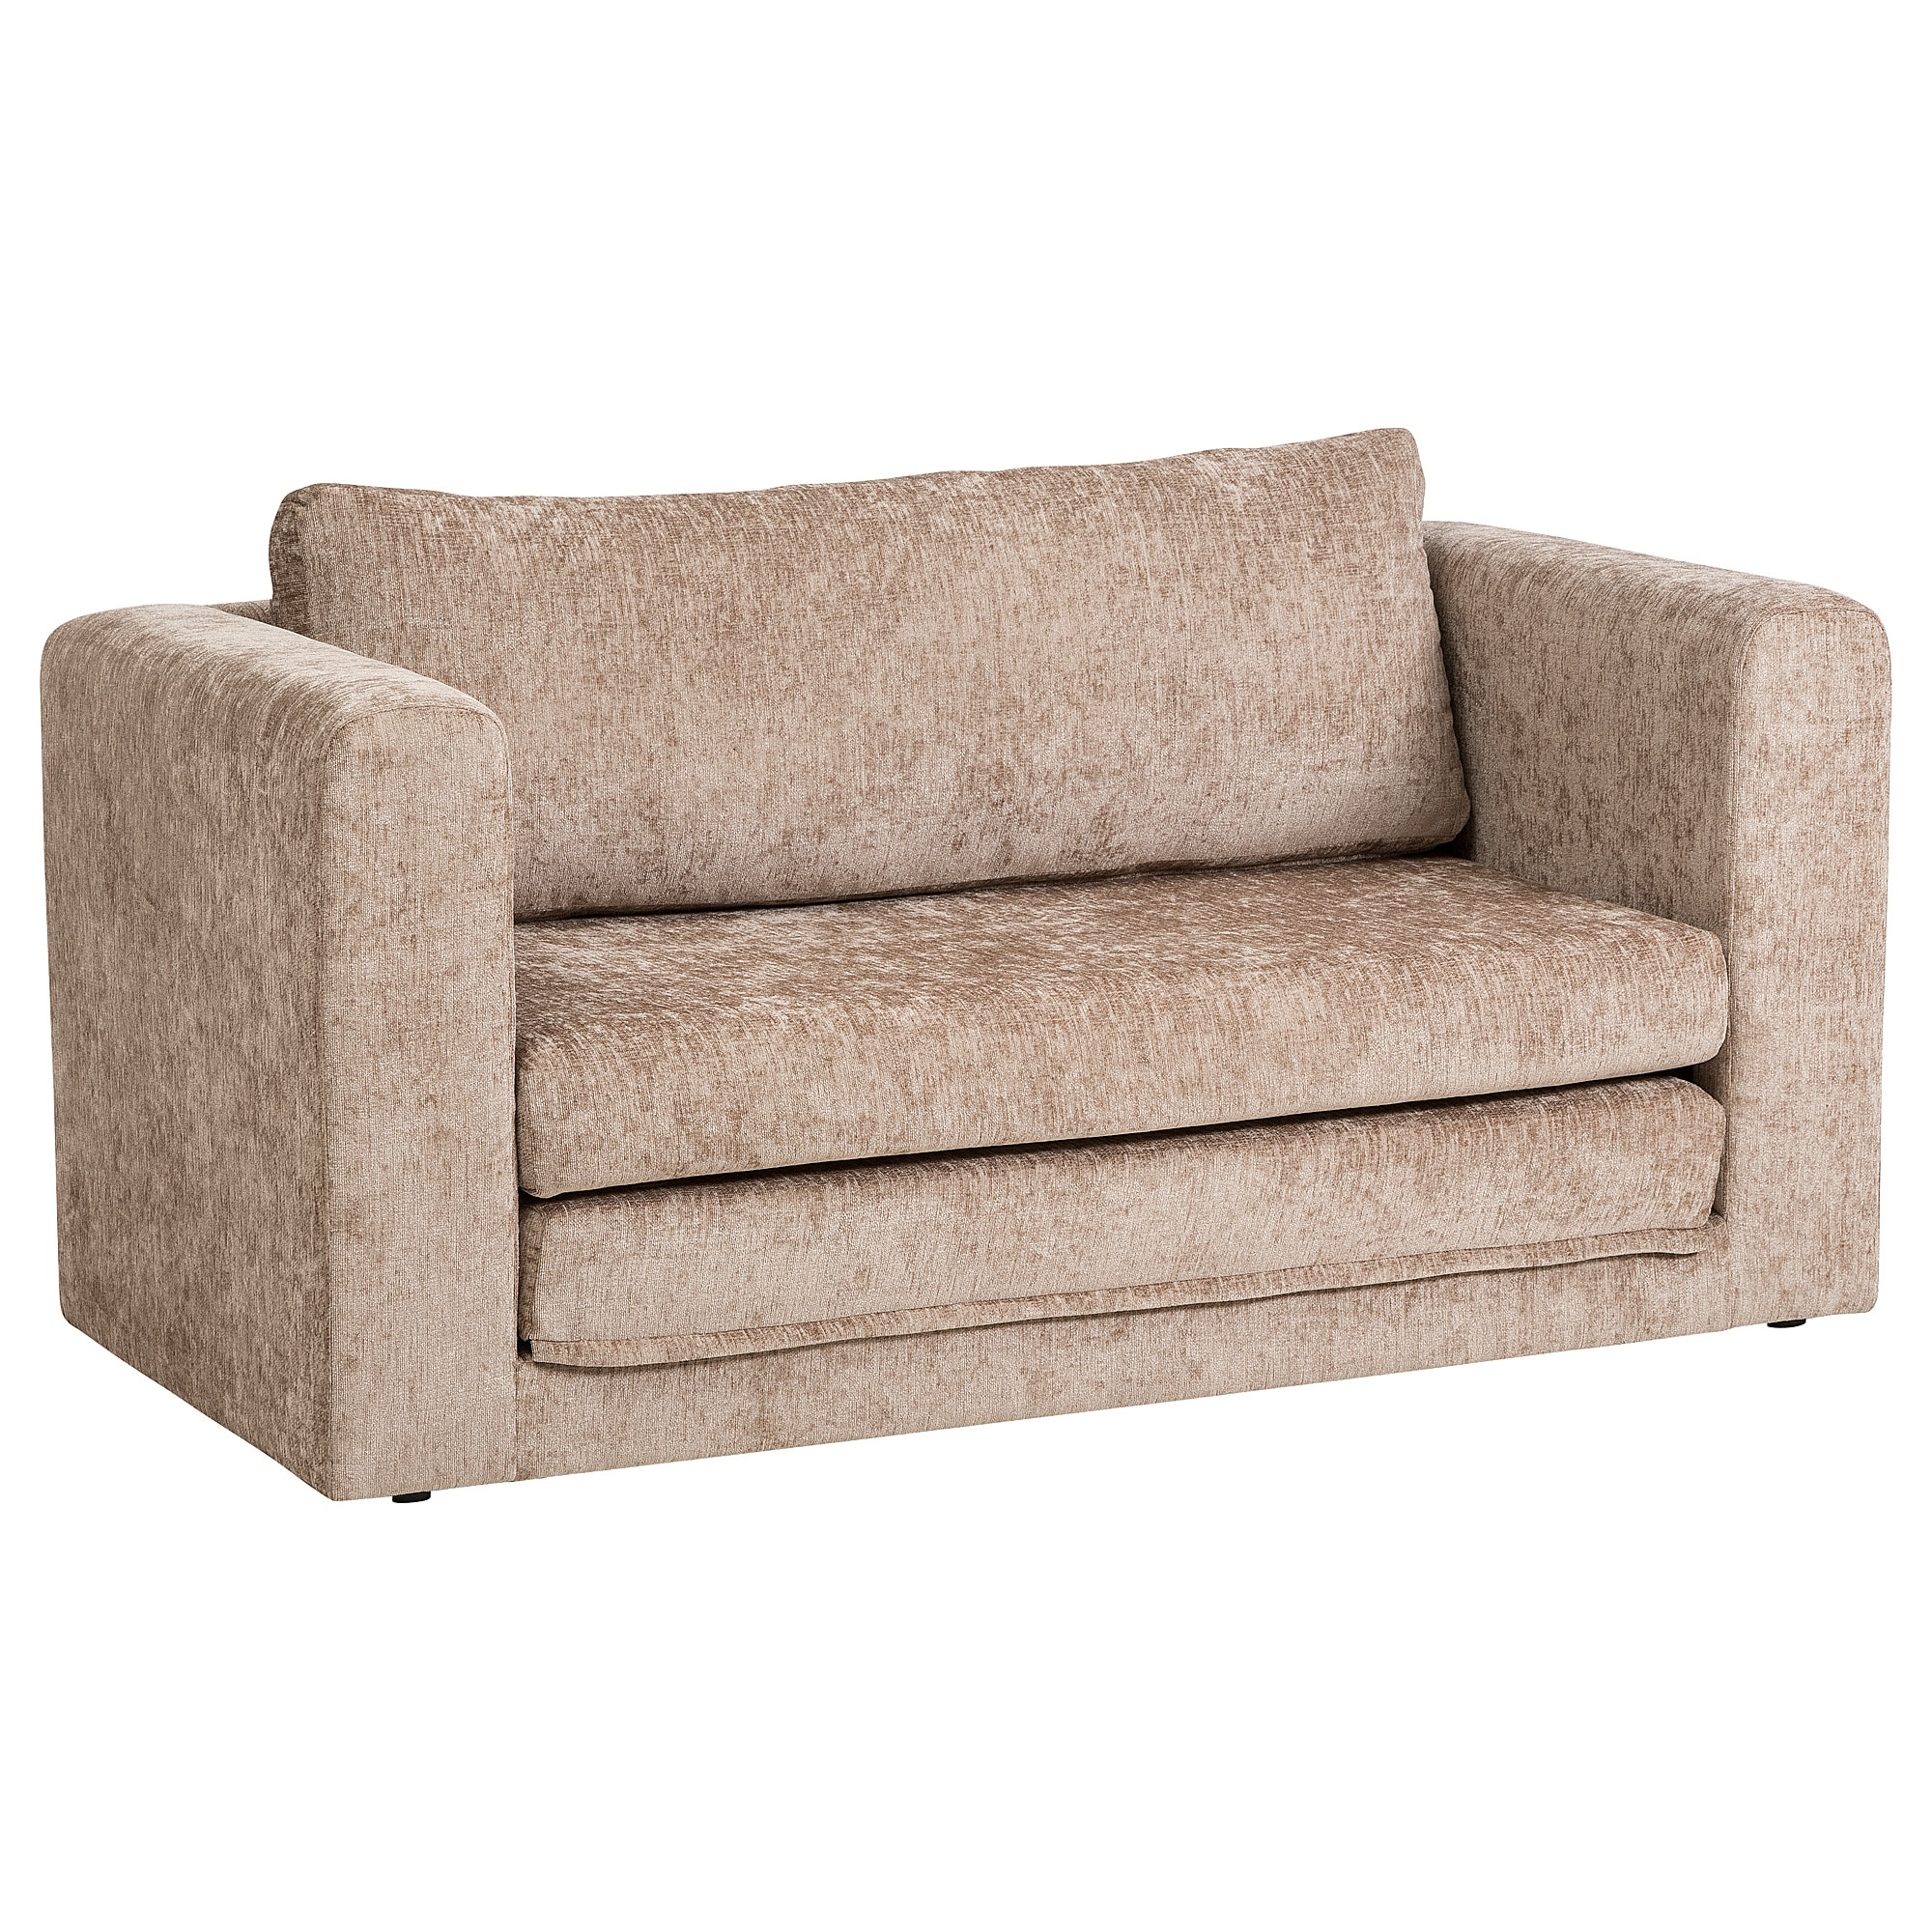 Sofa Bed Chairs With Regard To Well Liked Corner Sofa Beds, Futons & Chair Beds (View 17 of 20)